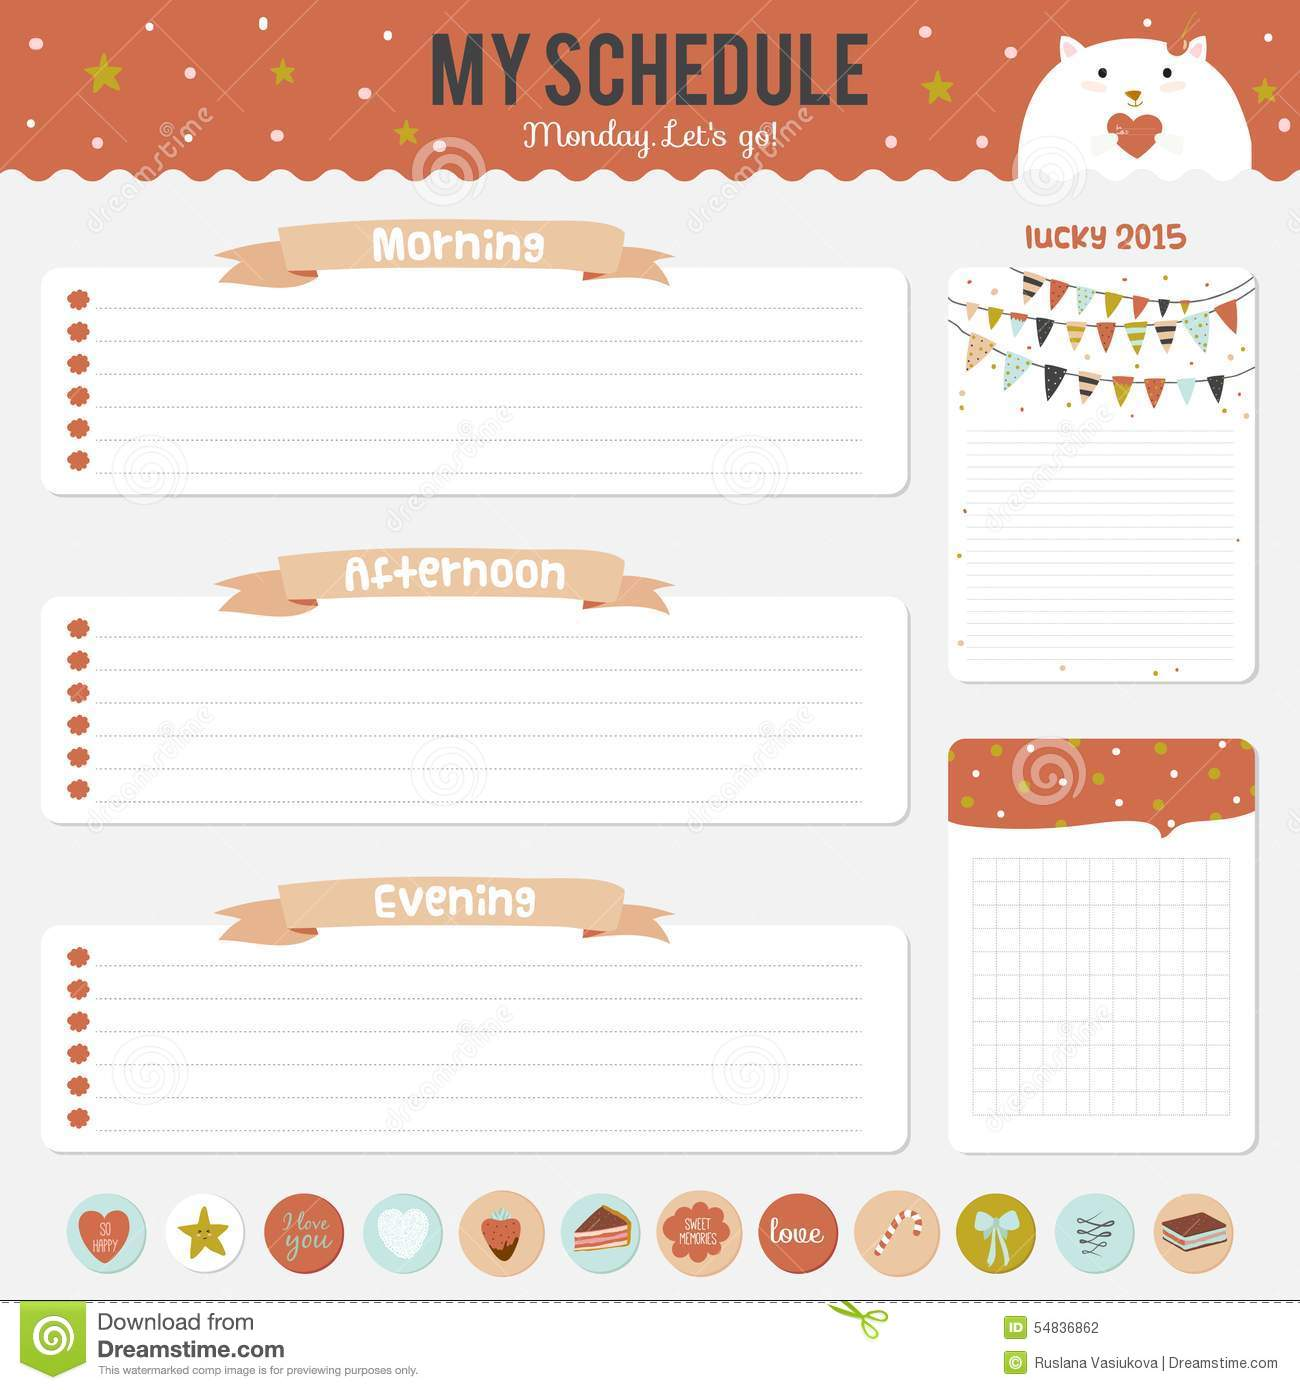 Cute timetable template insrenterprises cute timetable template pronofoot35fo Gallery